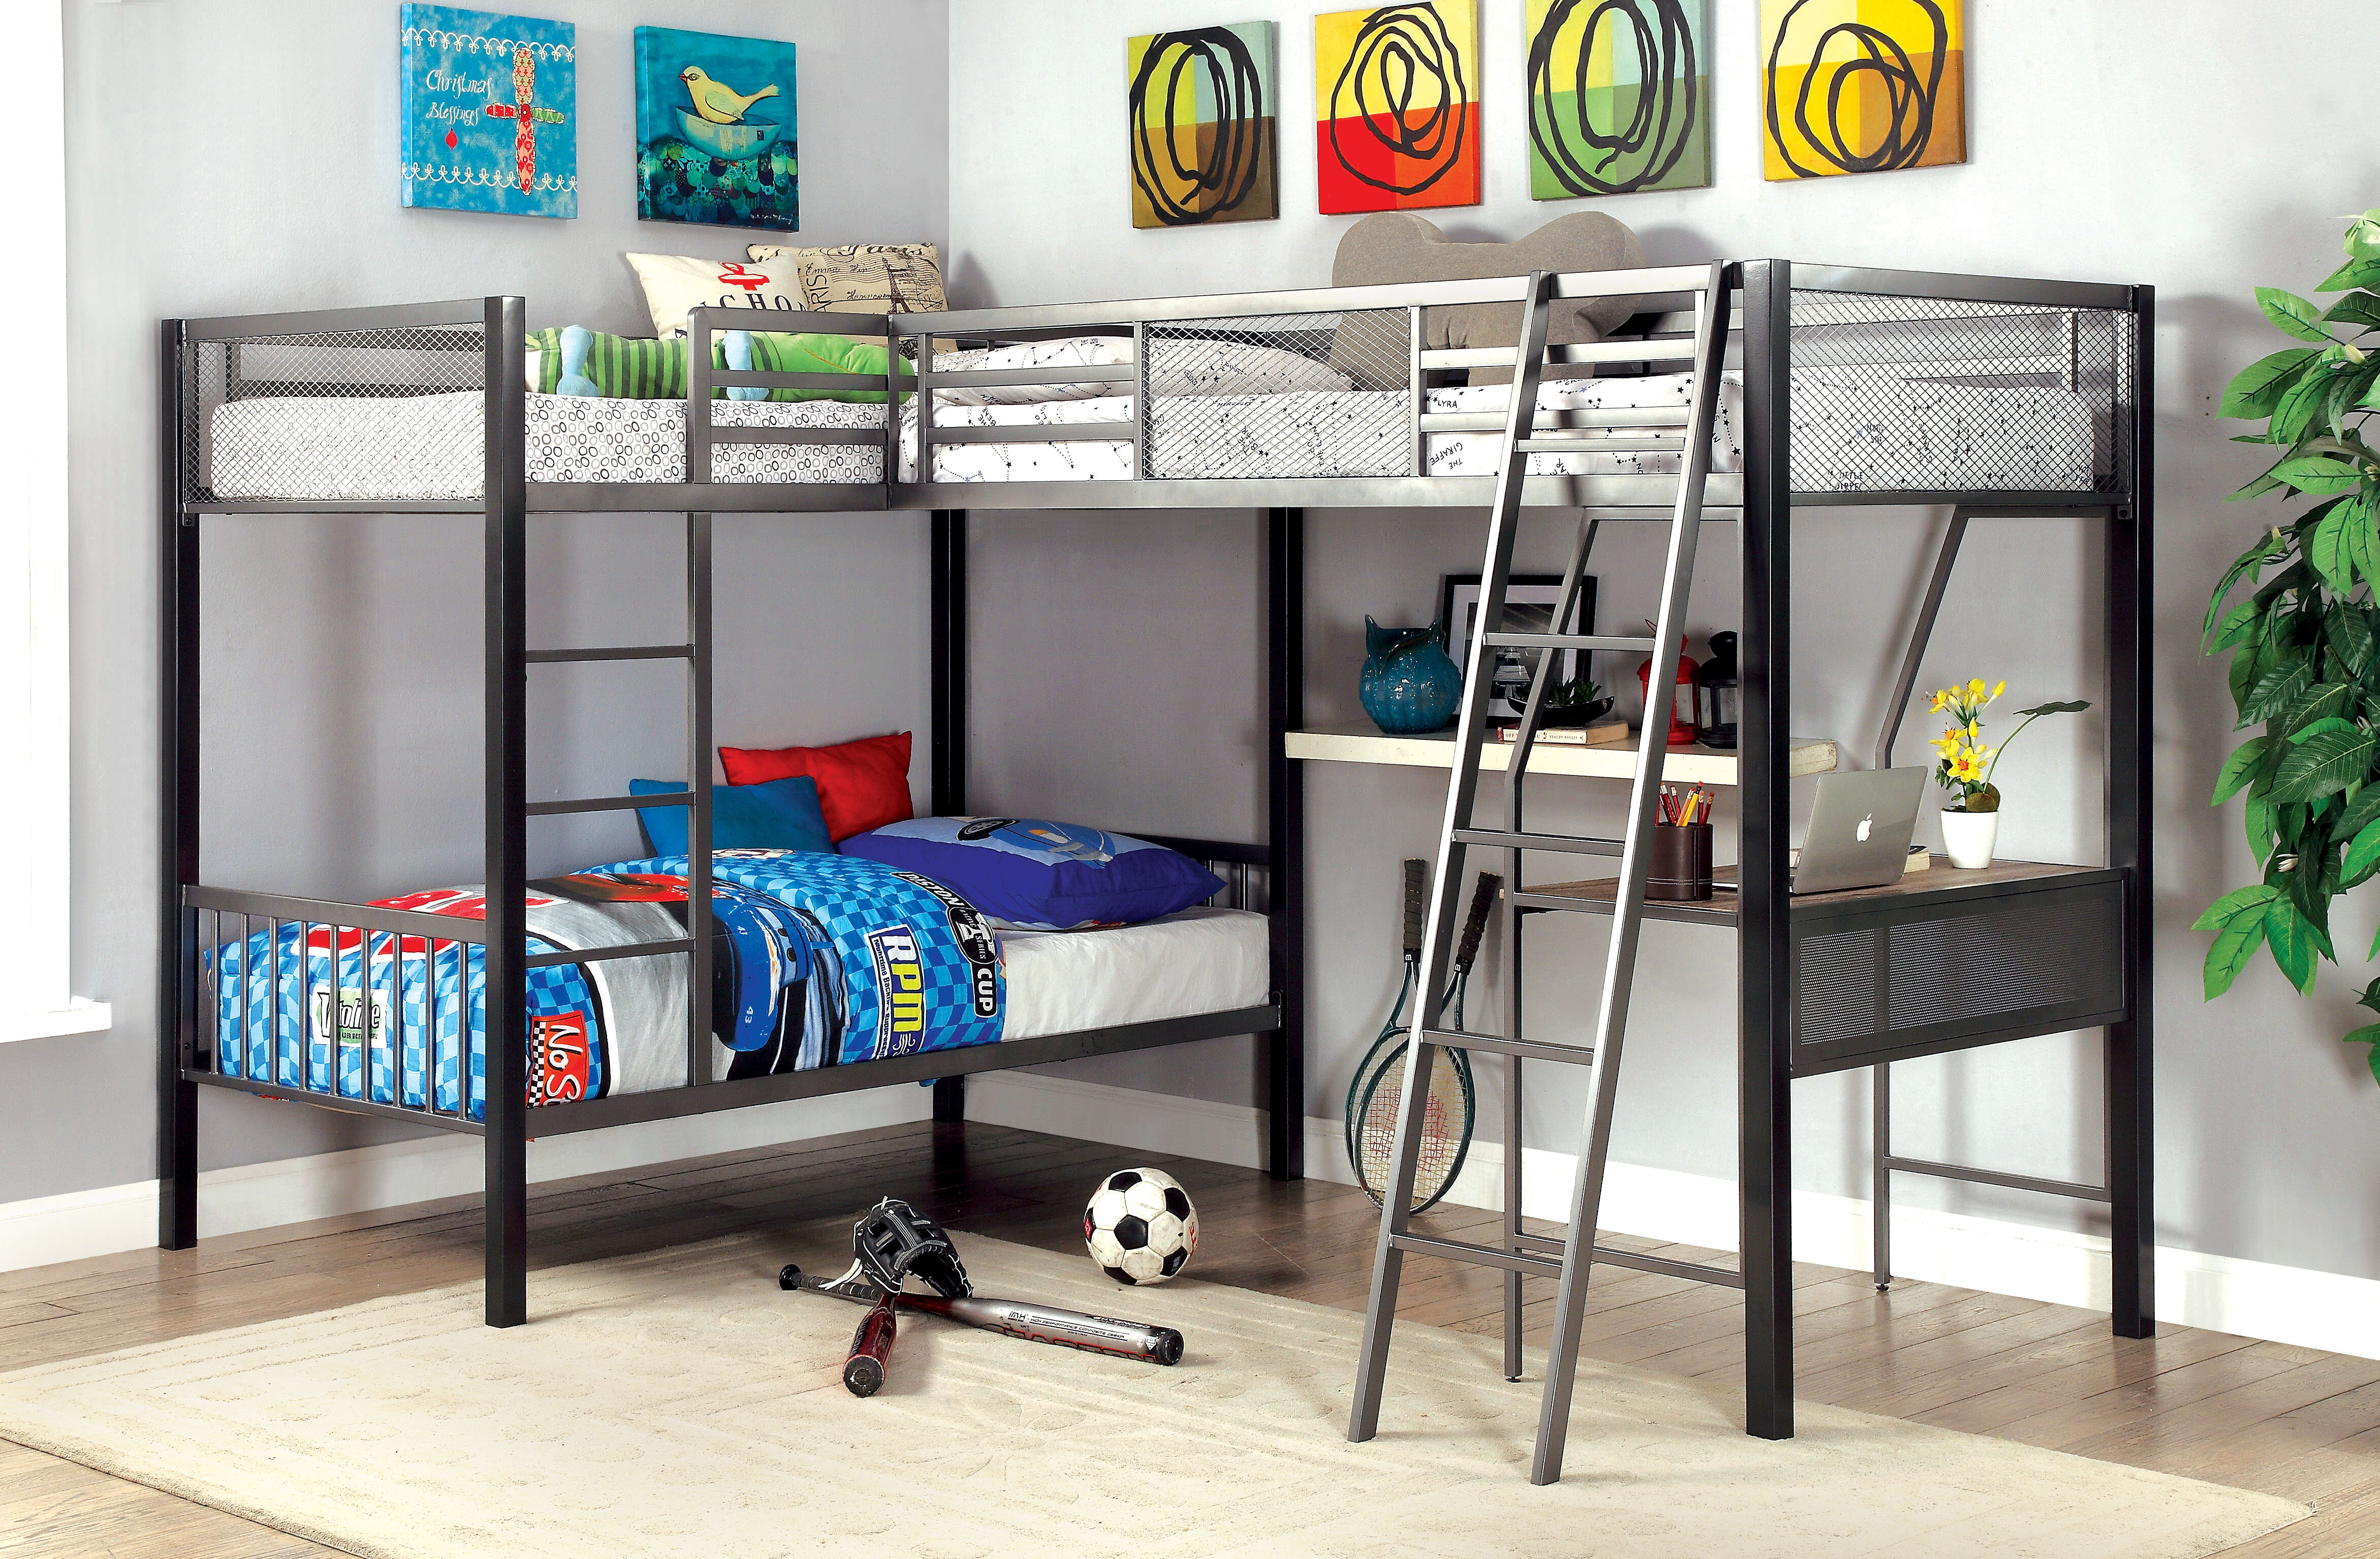 Isabelle Max Adnaan Contemporary Twin Over Twin L Shaped Bunk Loft Bed With Storage And Display Shelf Reviews Wayfair